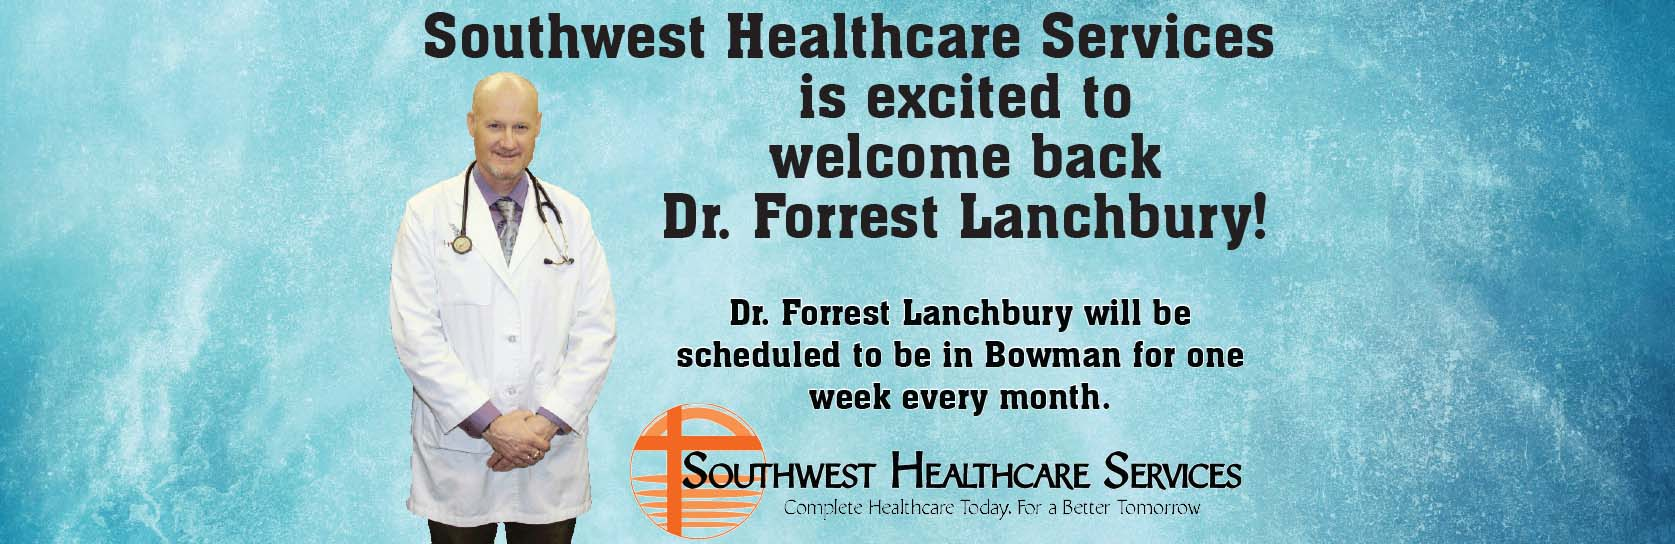 Dr. Lanchbury - Welcome